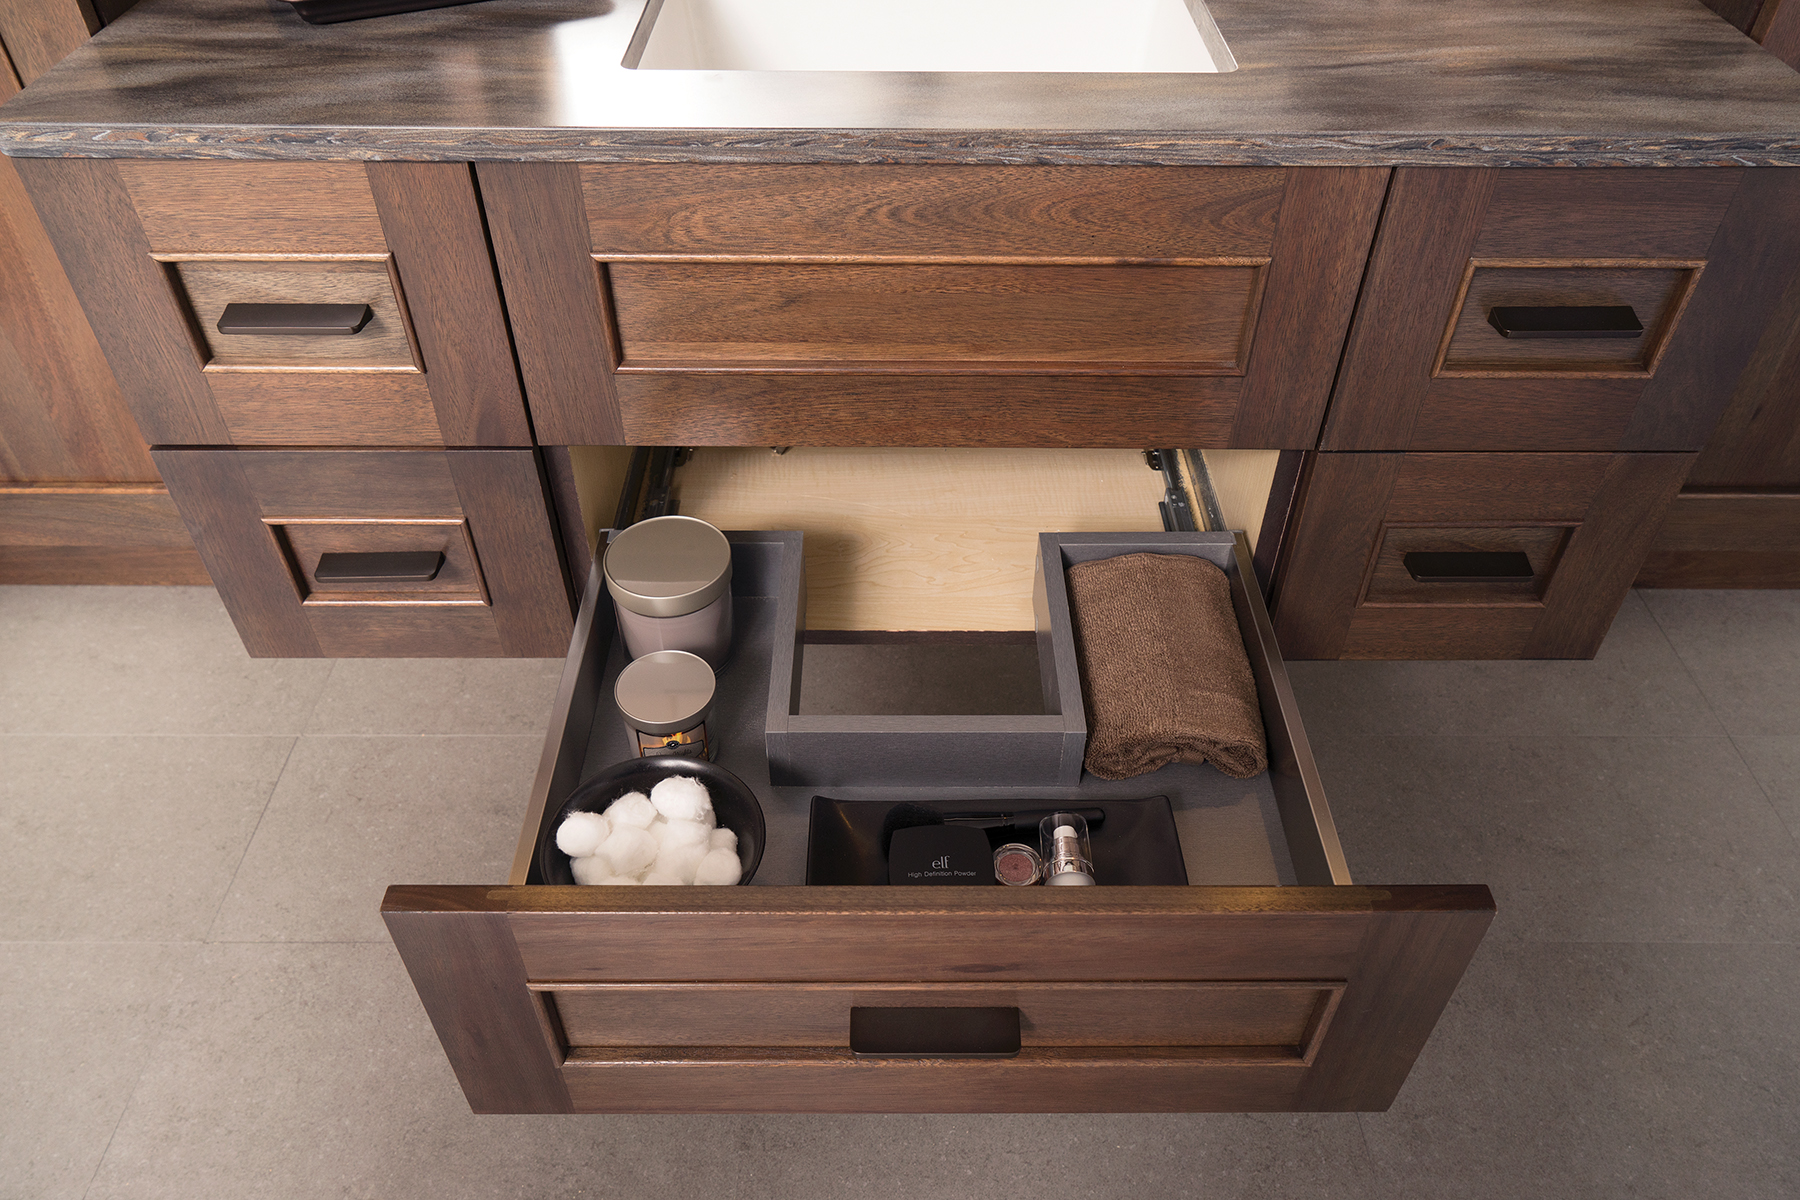 plumbing drawers for residential pros. Black Bedroom Furniture Sets. Home Design Ideas